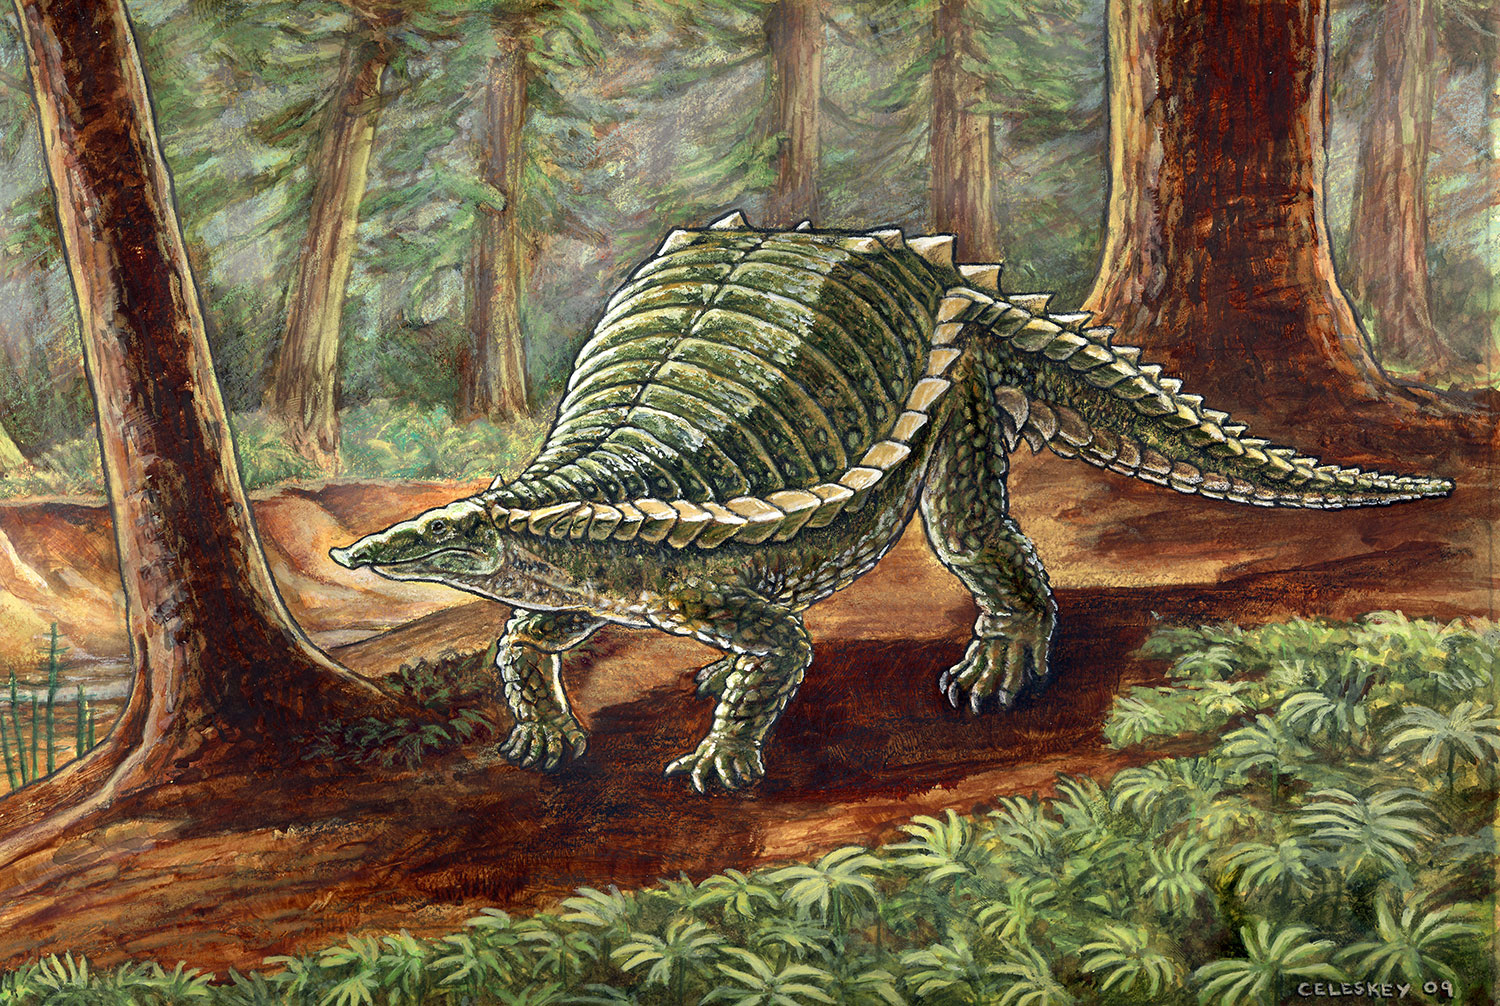 Restoration of Typothorax an example of the Triassic armoured reptile group known as aetosaurs. Illustration © Matt Celeskey.